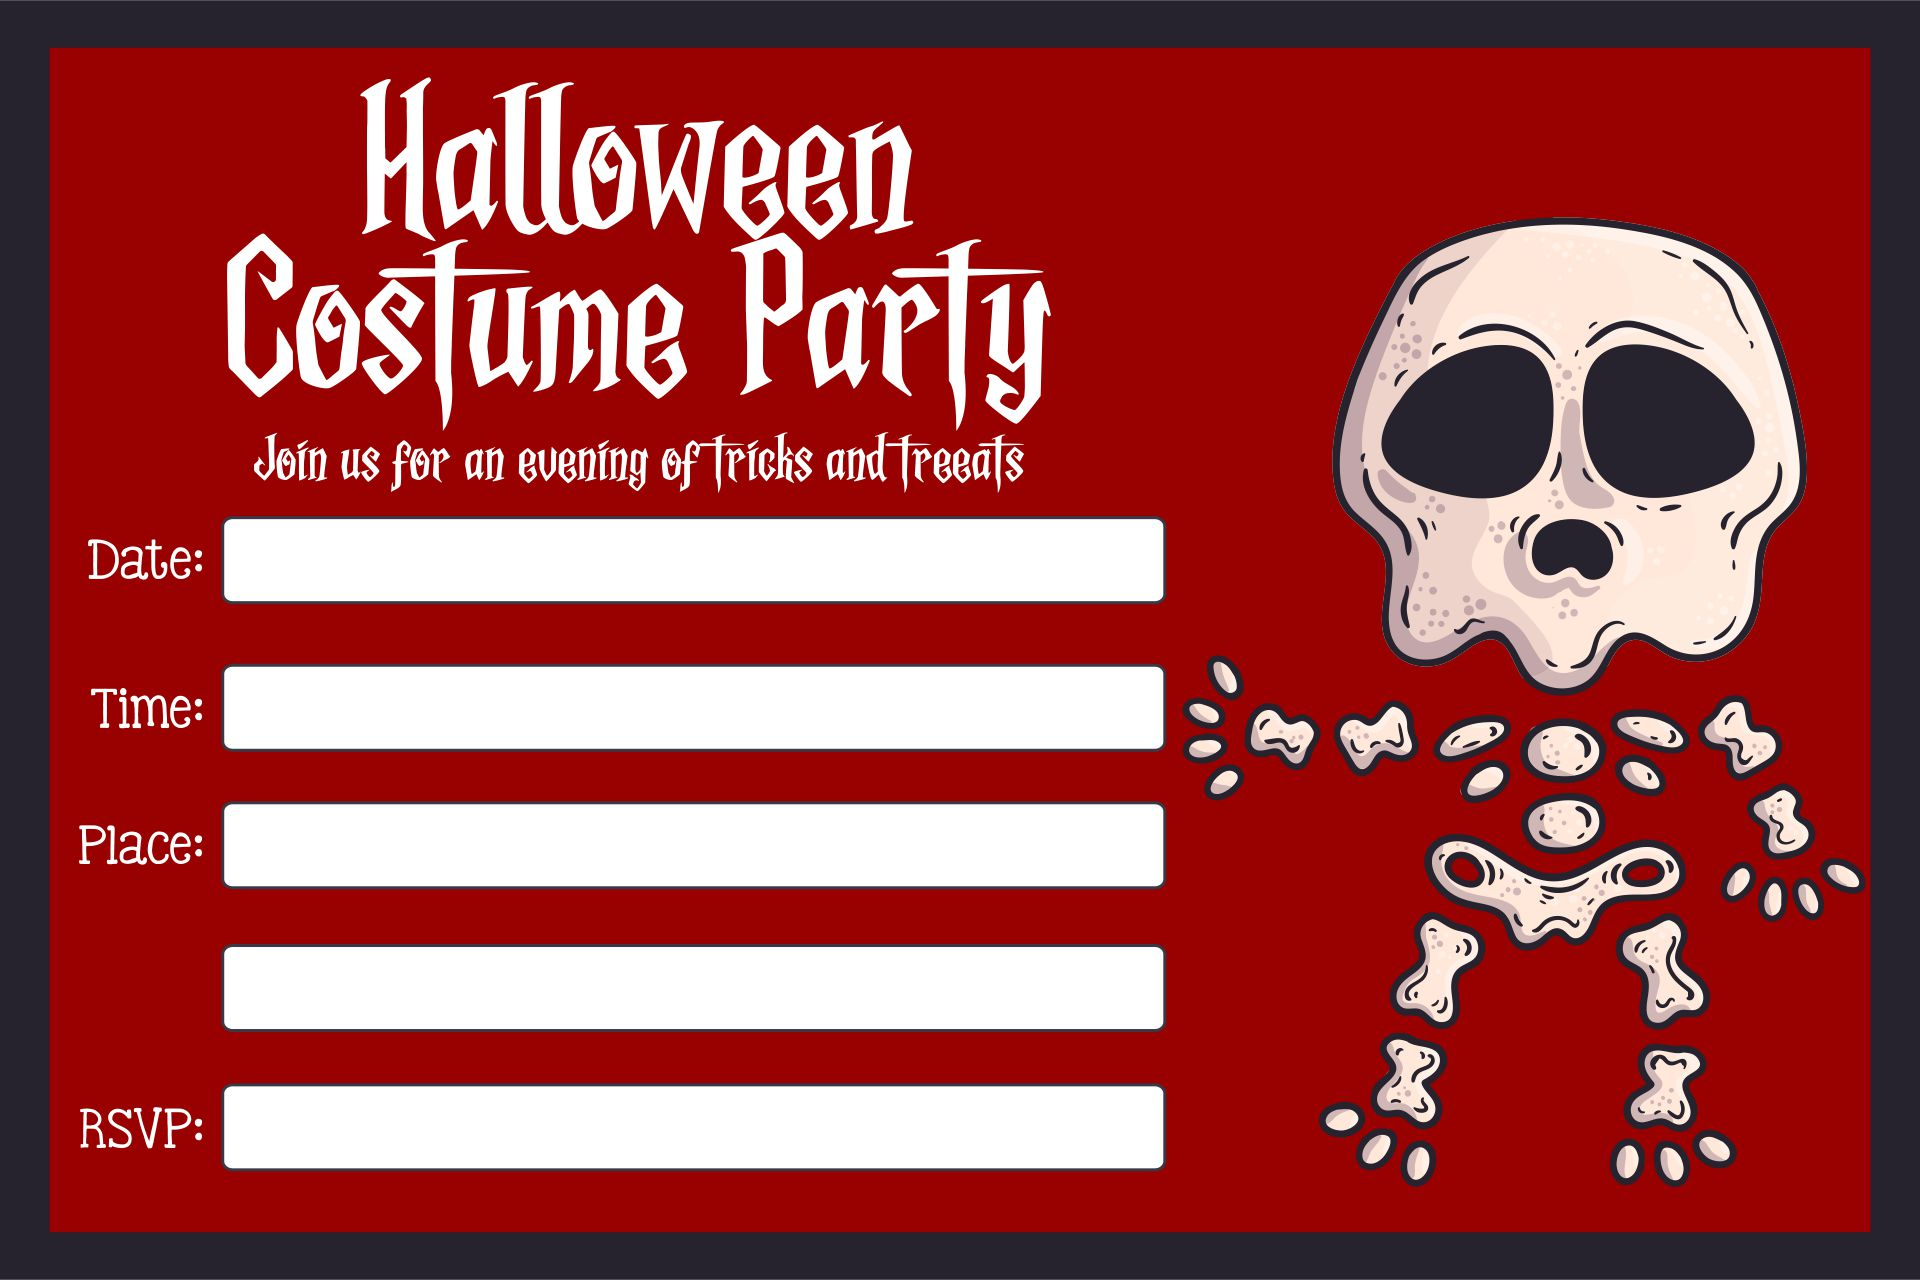 halloween costume party invitations - halloween comstume, Party invitations